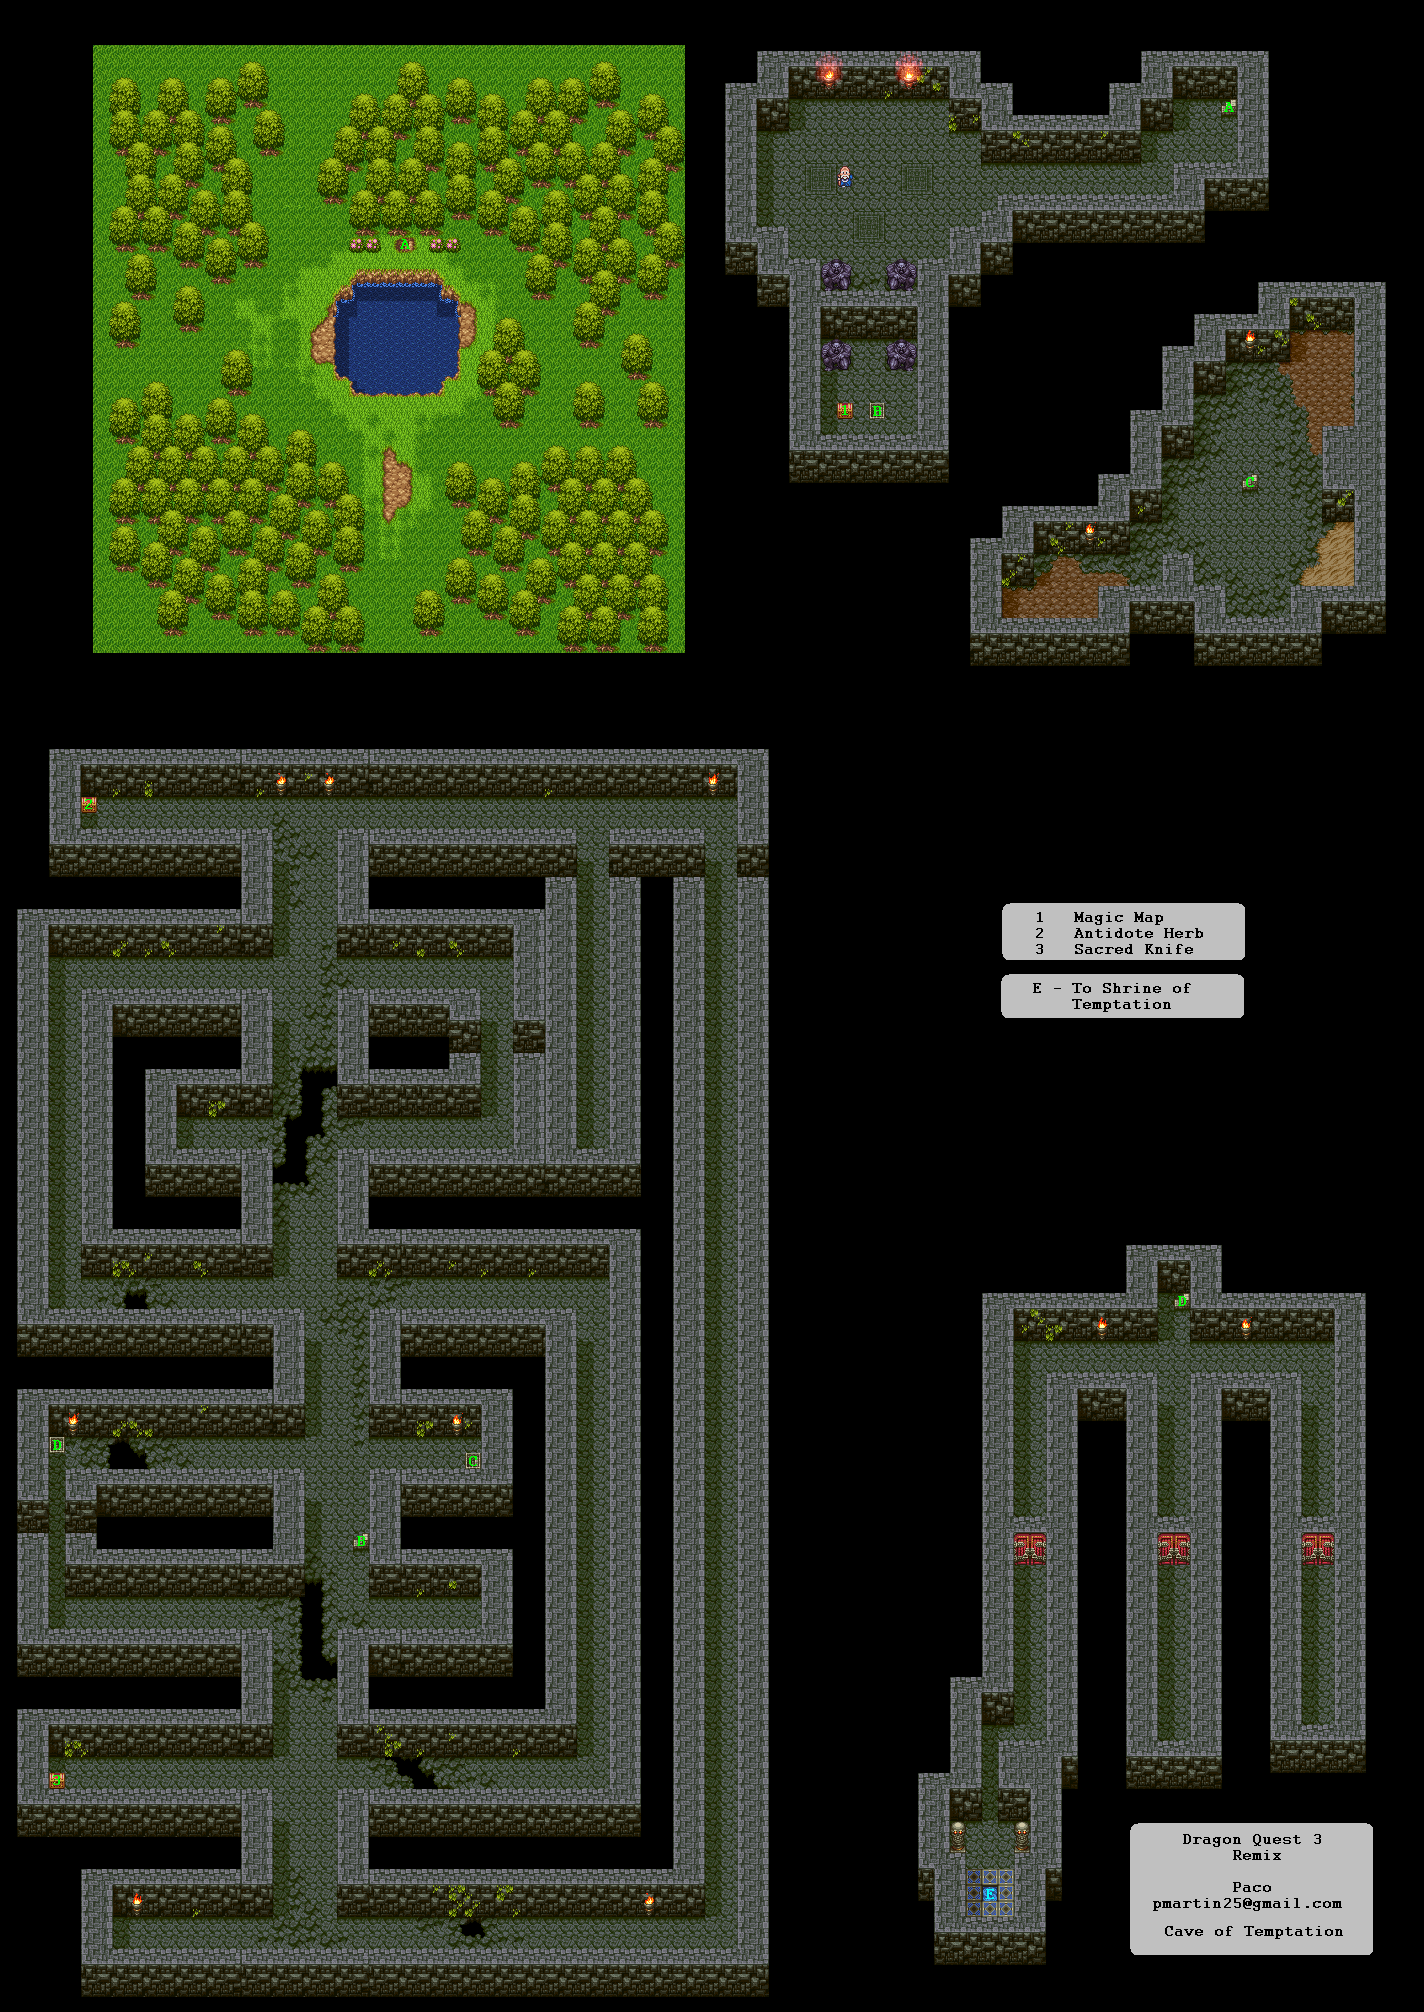 Dragon Quest 3 Map : dragon, quest, Dragon, Quest, Dungeon, Tower, Realm, Darkness.net, Warrior, Shrine